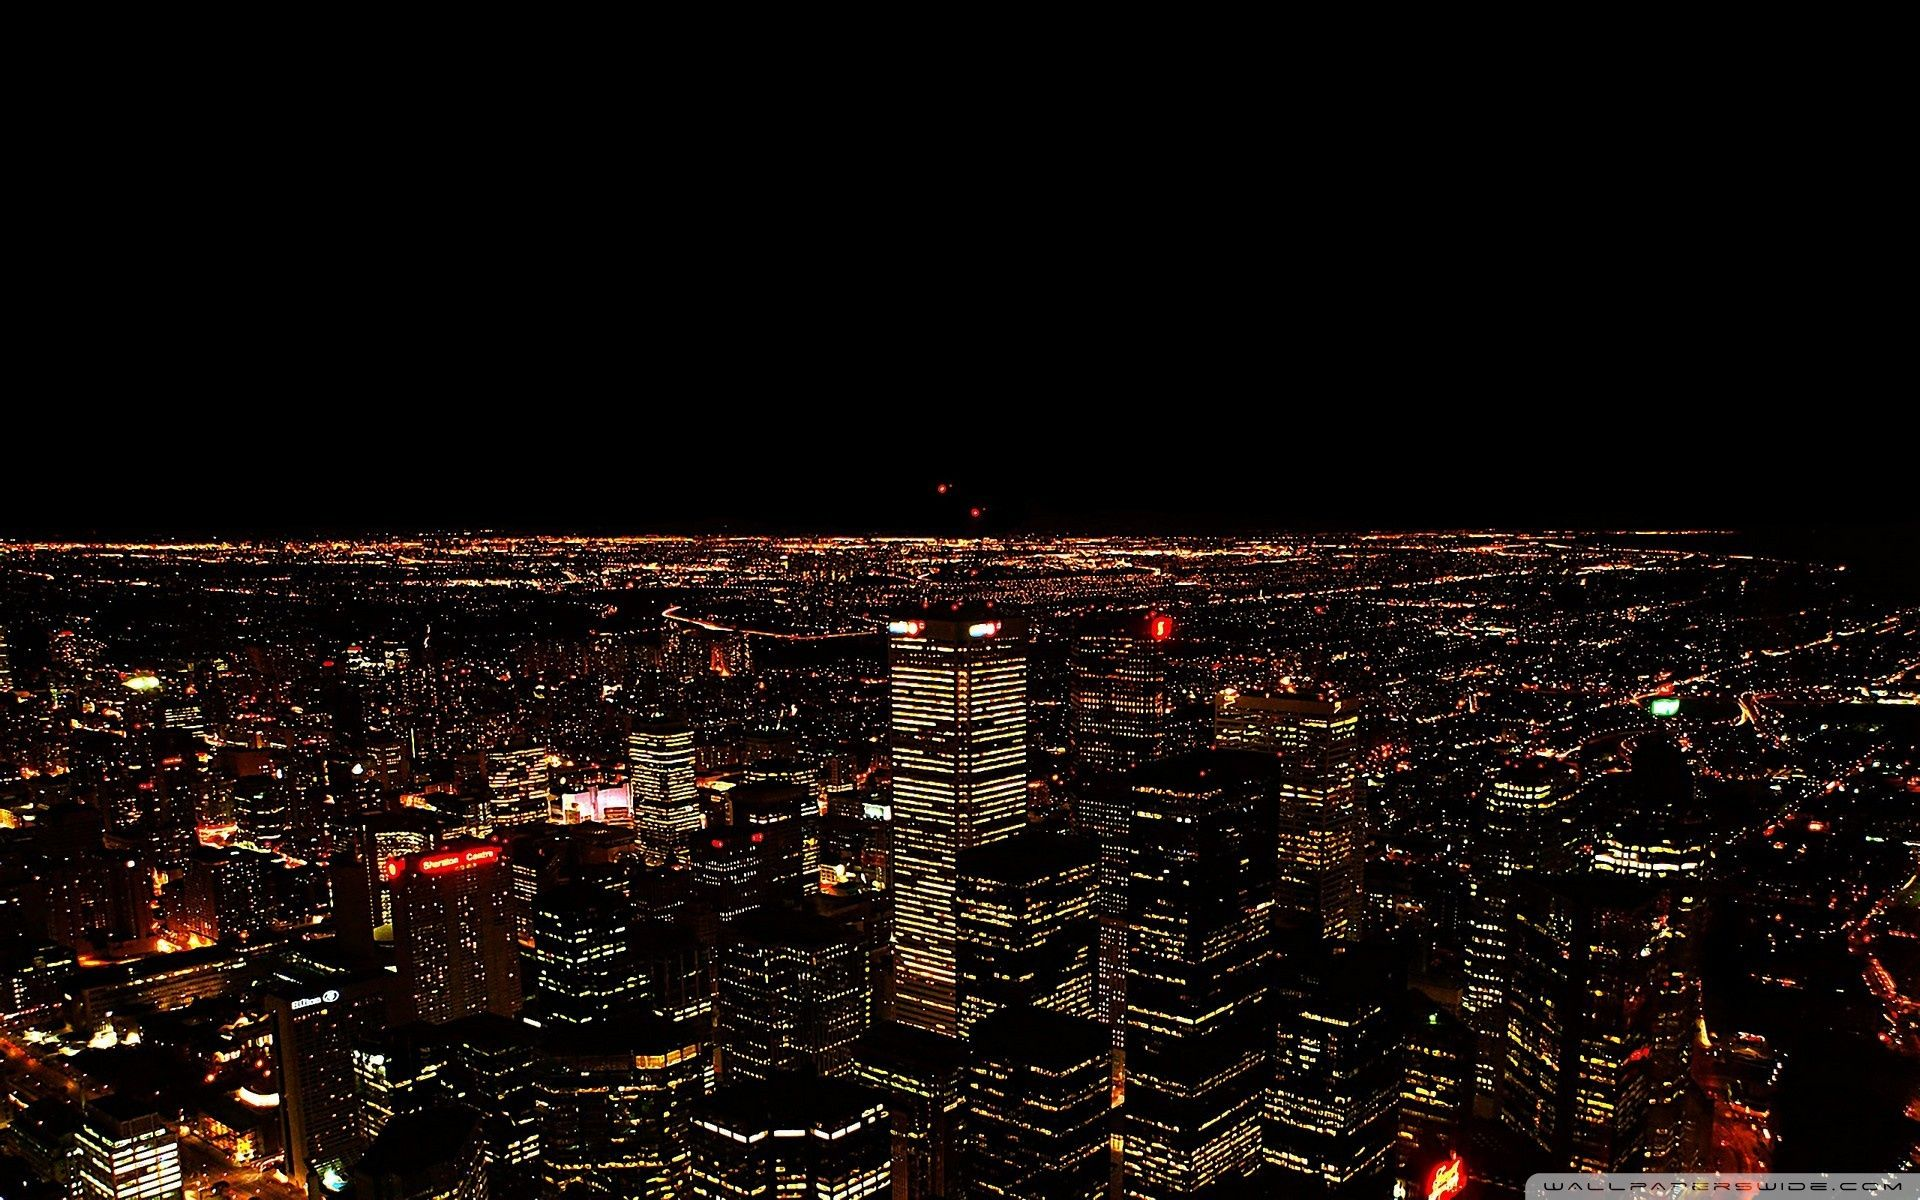 Cityscape Night Wallpapers Top Free Cityscape Night Backgrounds Wallpaperaccess